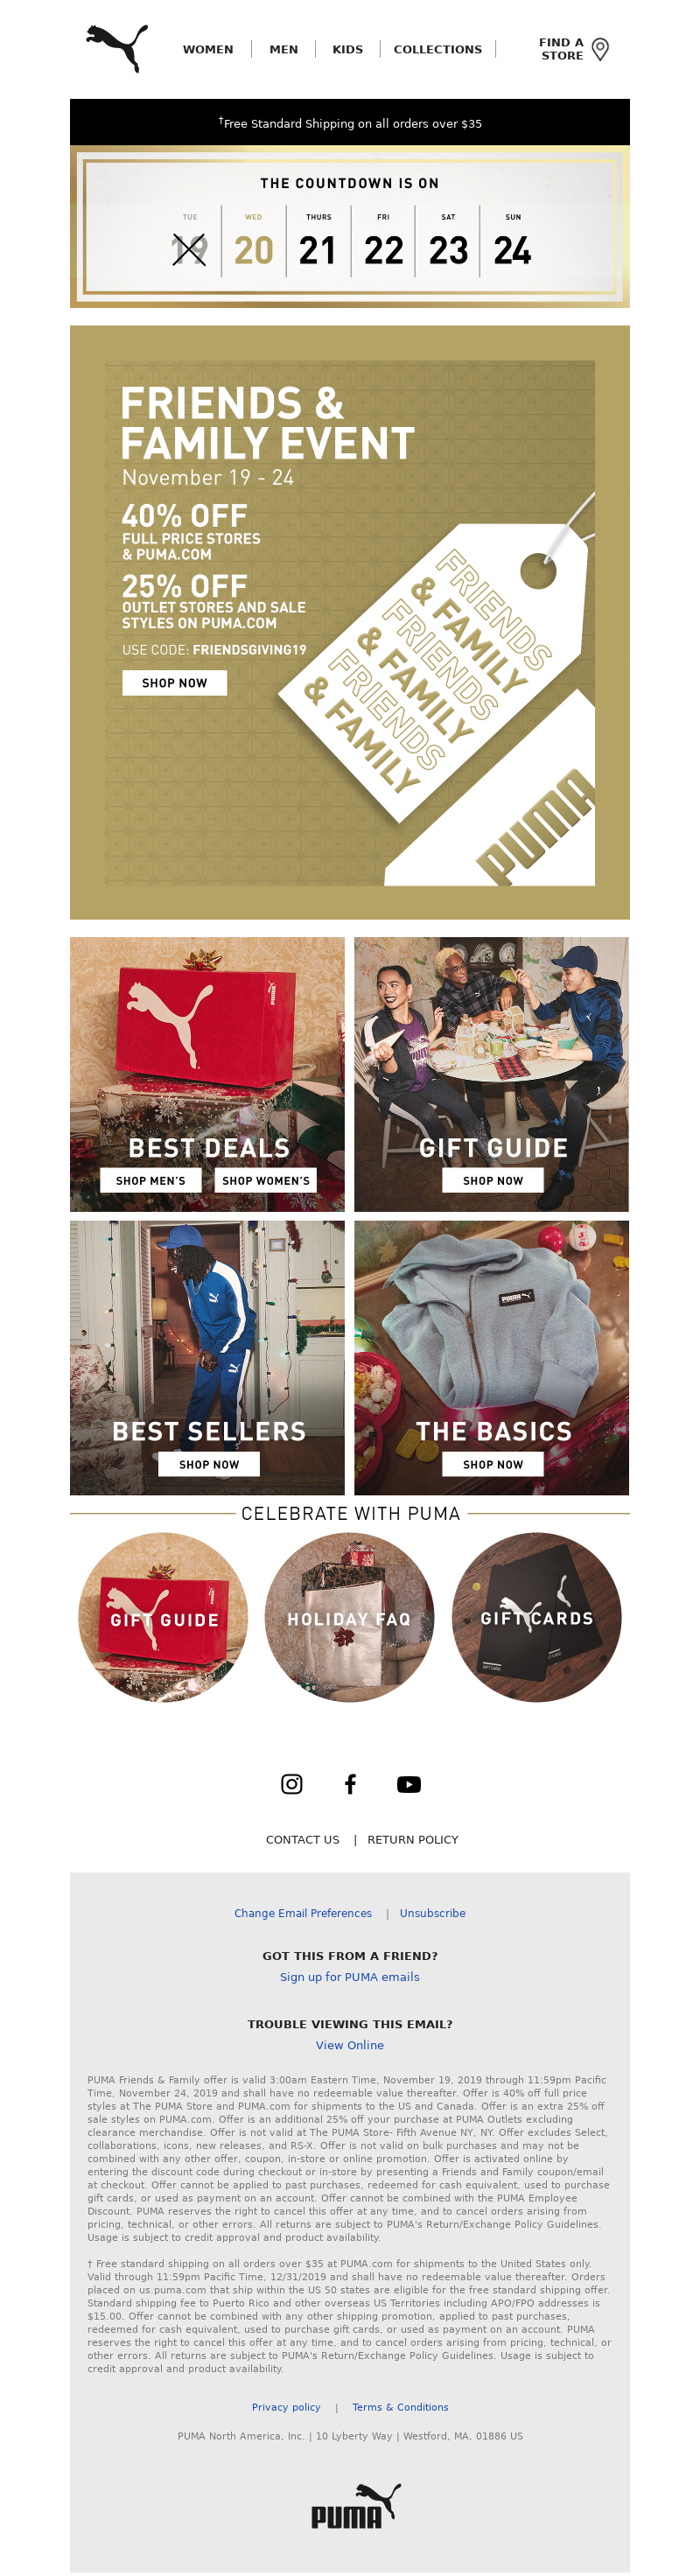 PUMA USA - Gifts for the whole fam. Now 40% off + Extra 25% off Sale